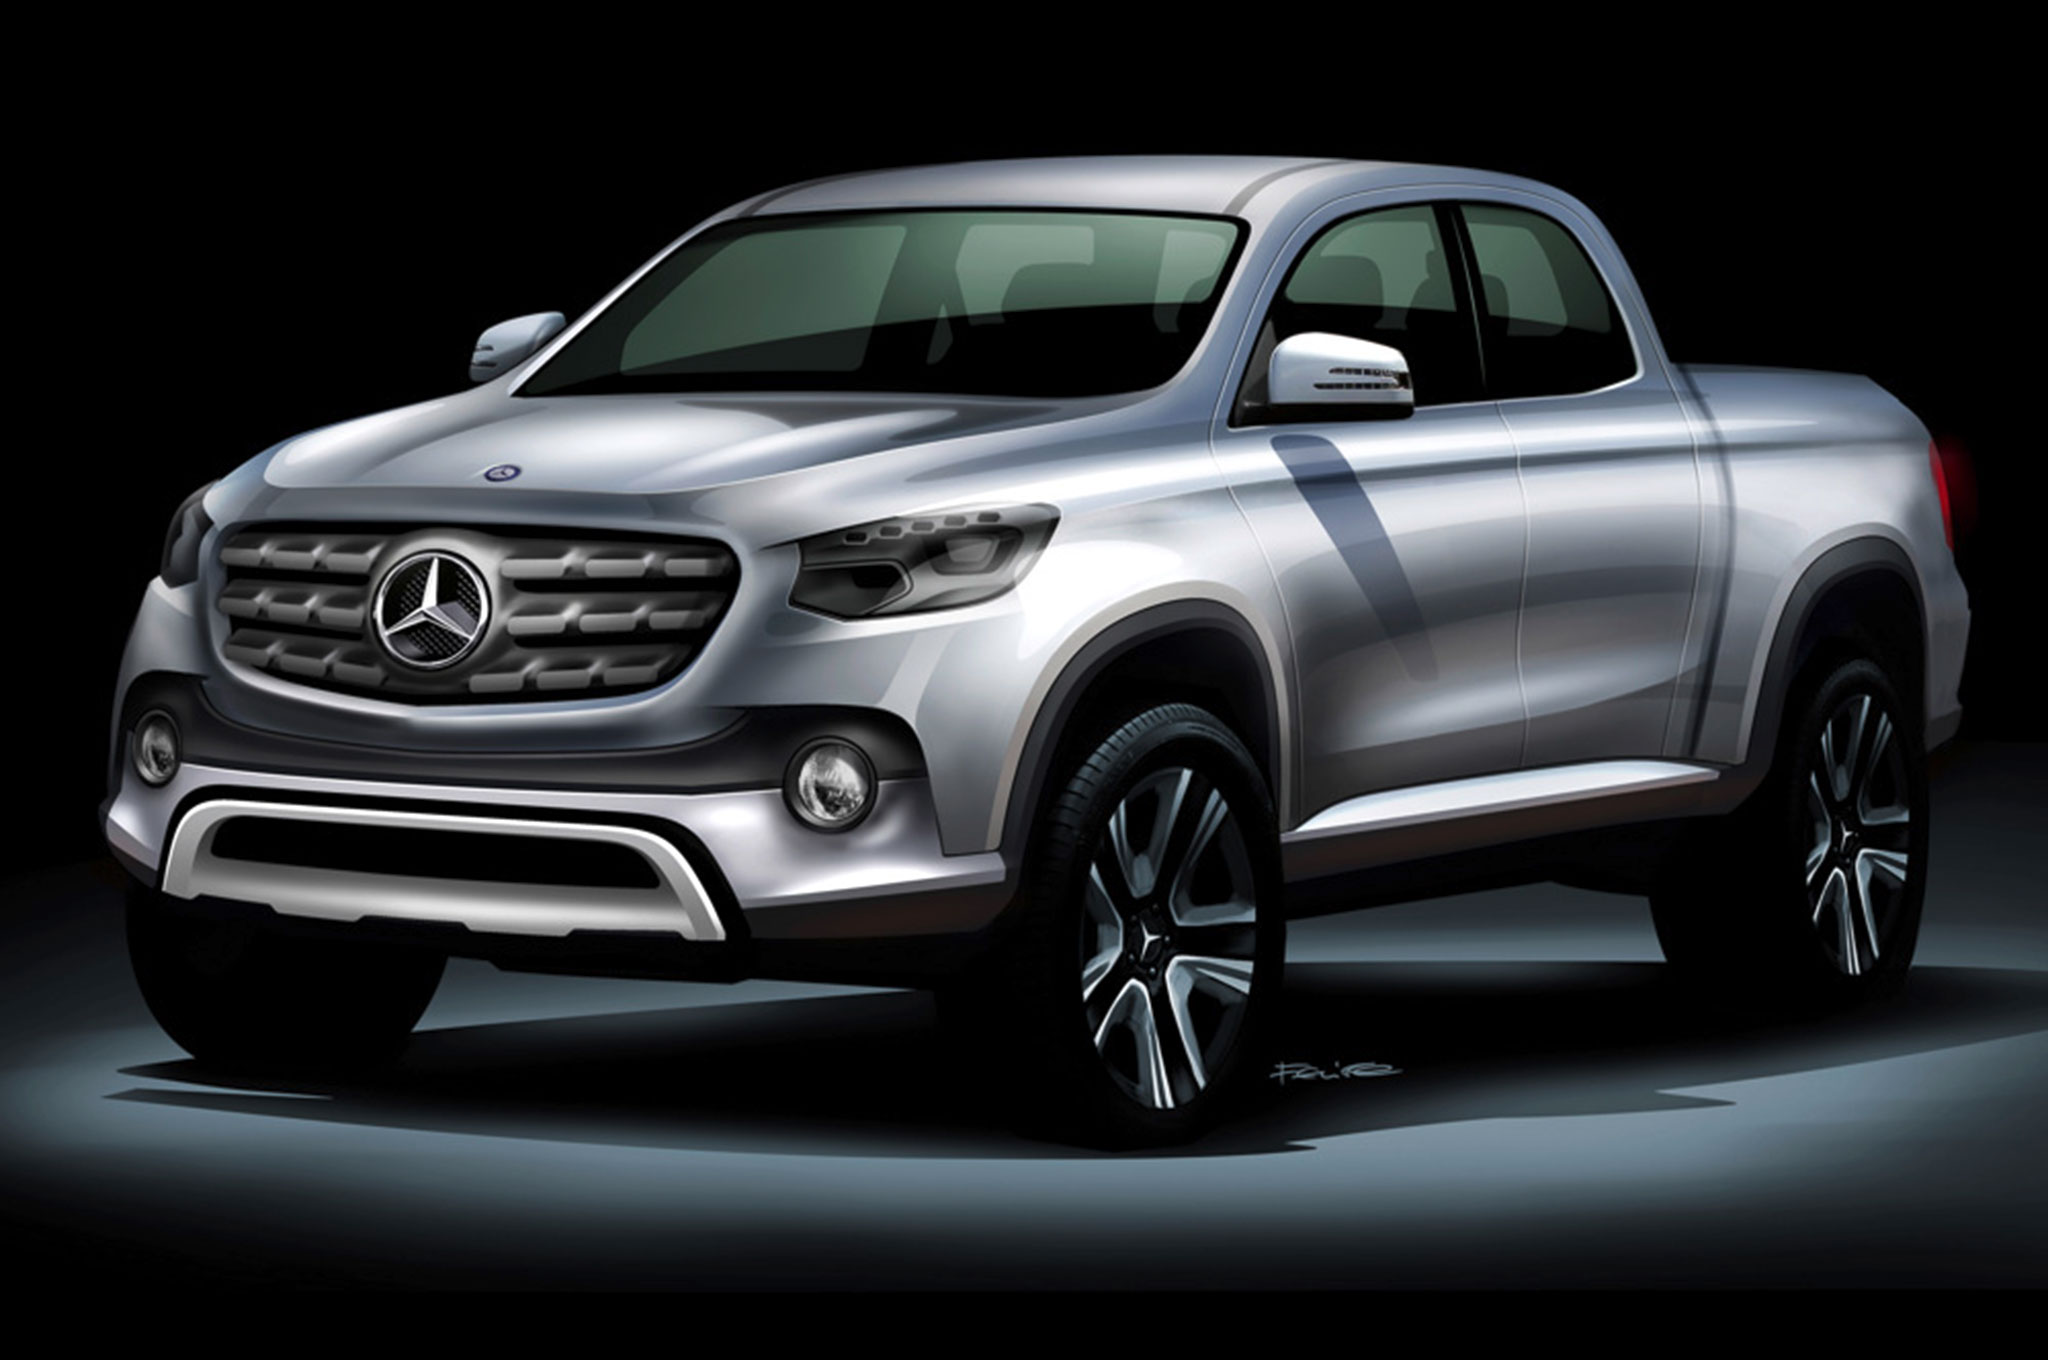 Mercedes benz announces plan for midsize pickup truck for Mercedes benz pickup truck